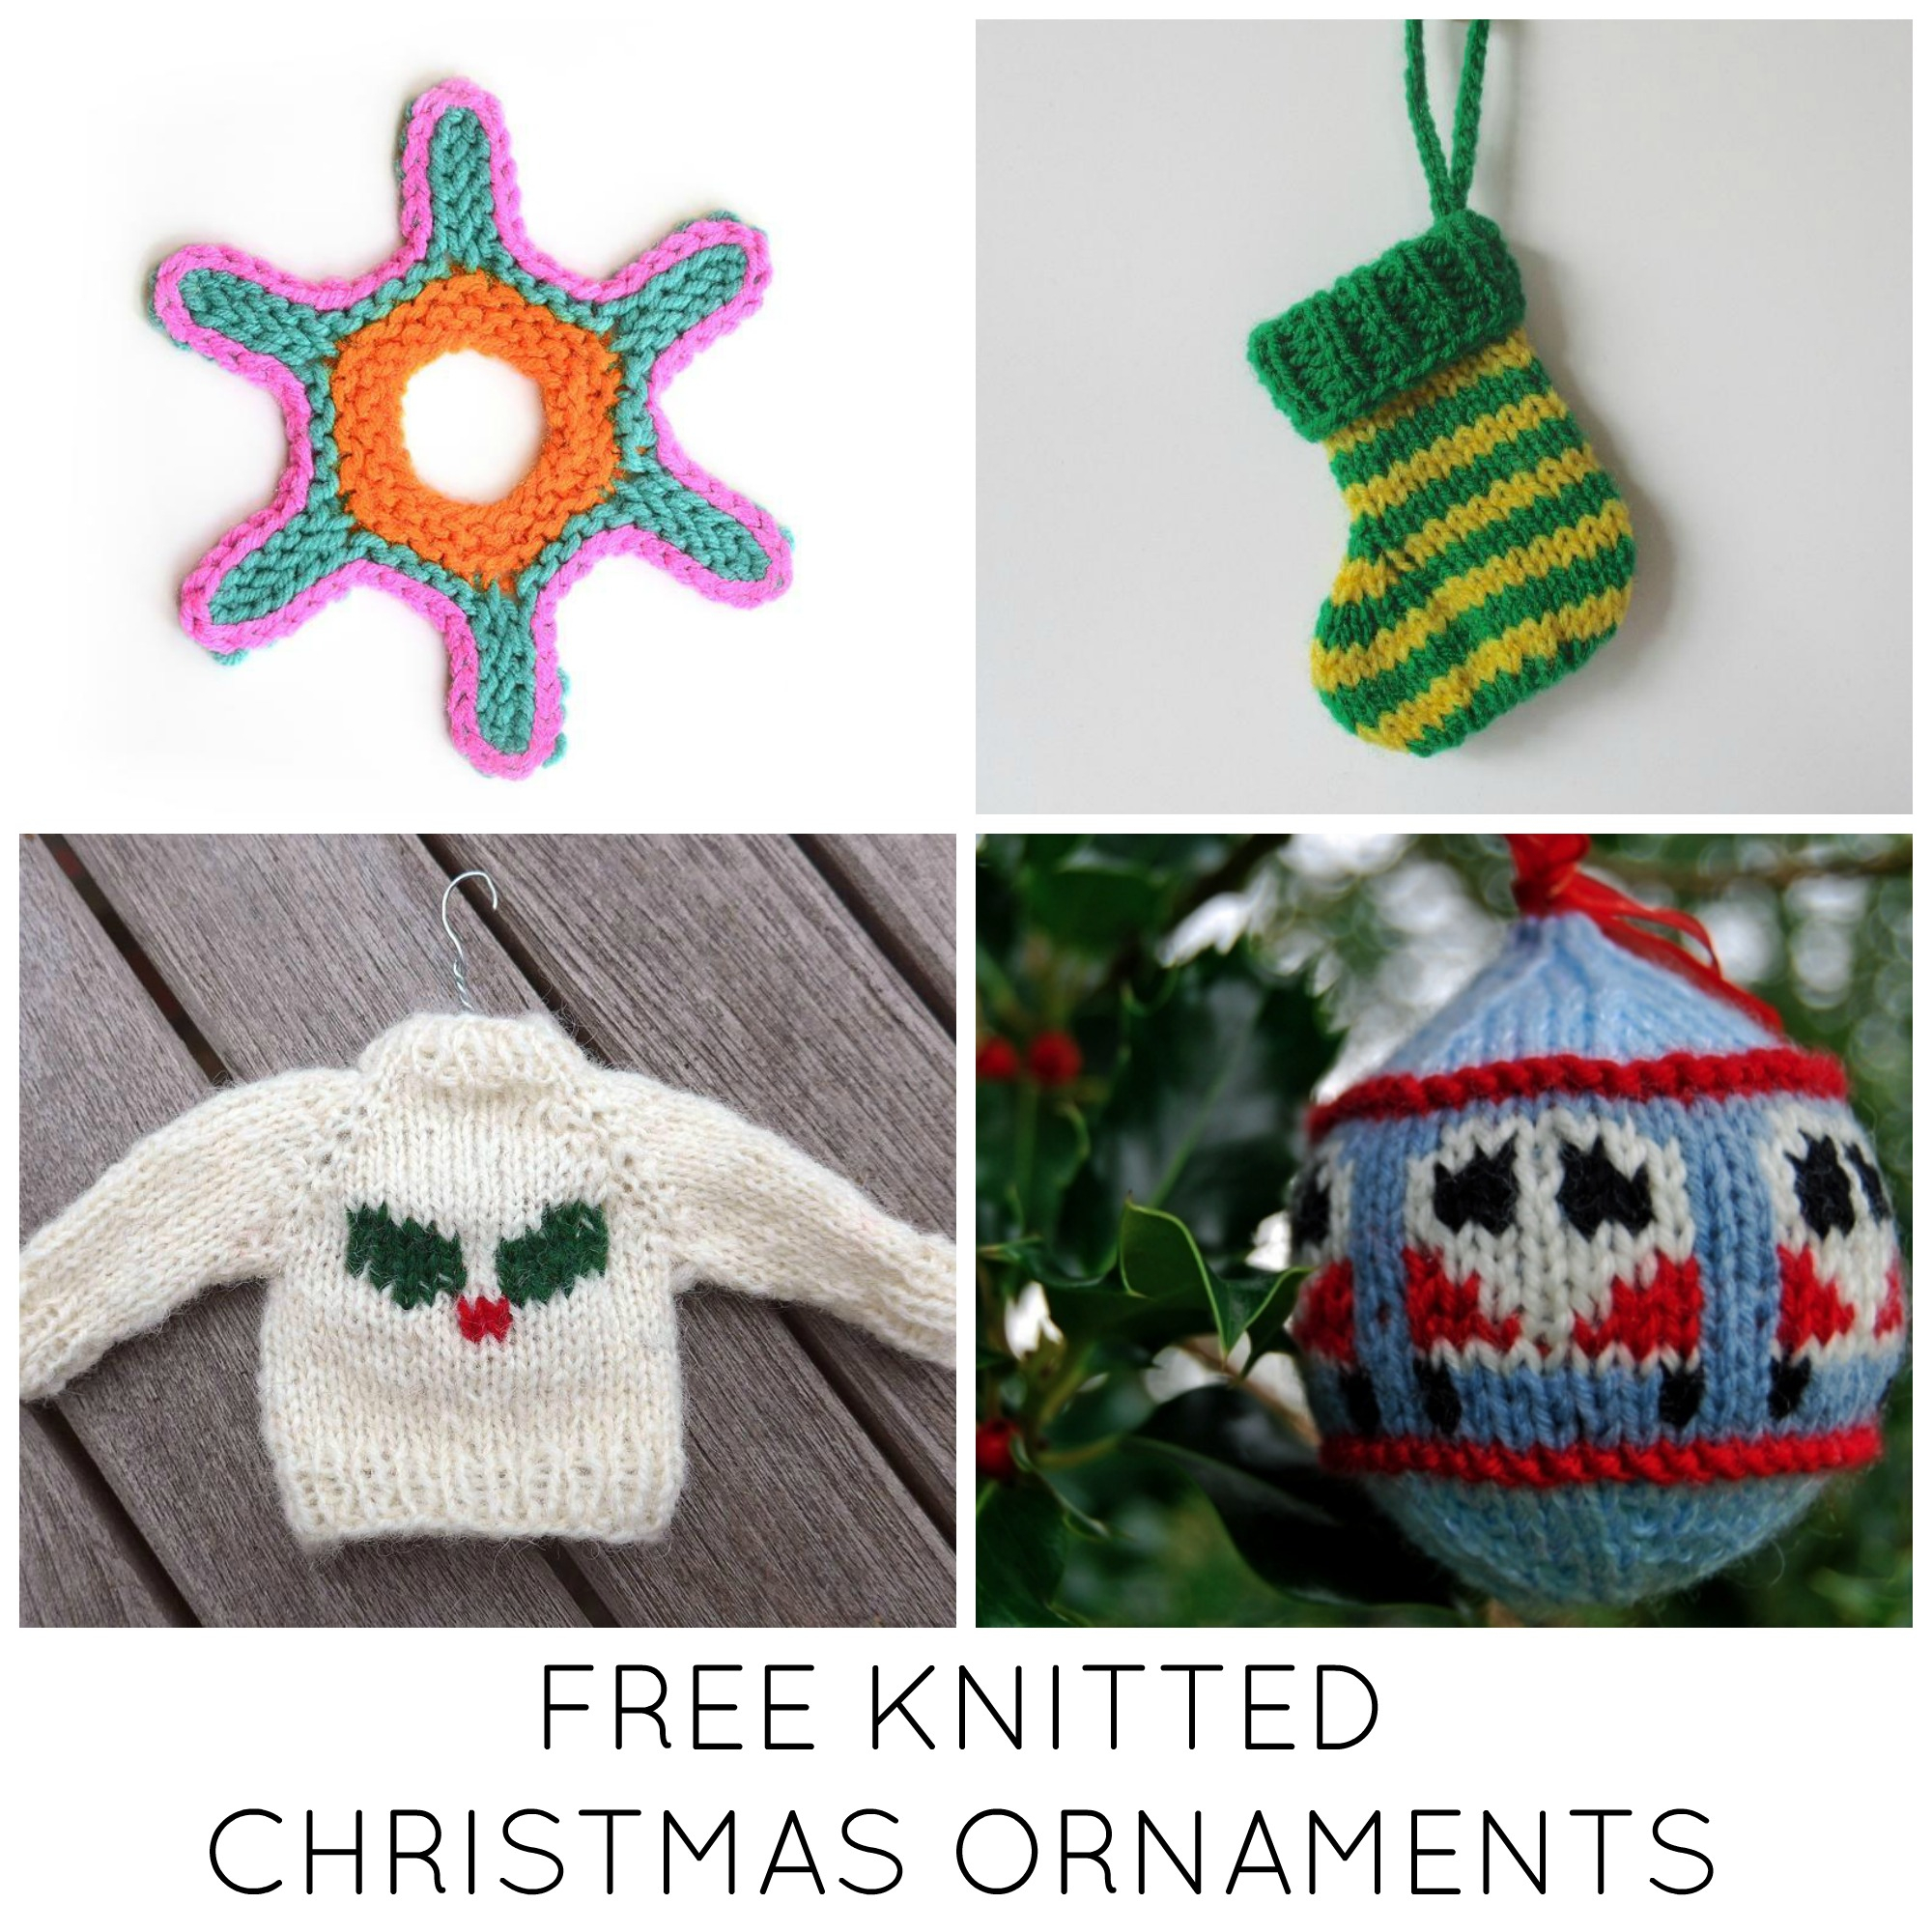 Knit Christmas Ornament Patterns 11 Festive Free Knitted Christmas Ornaments